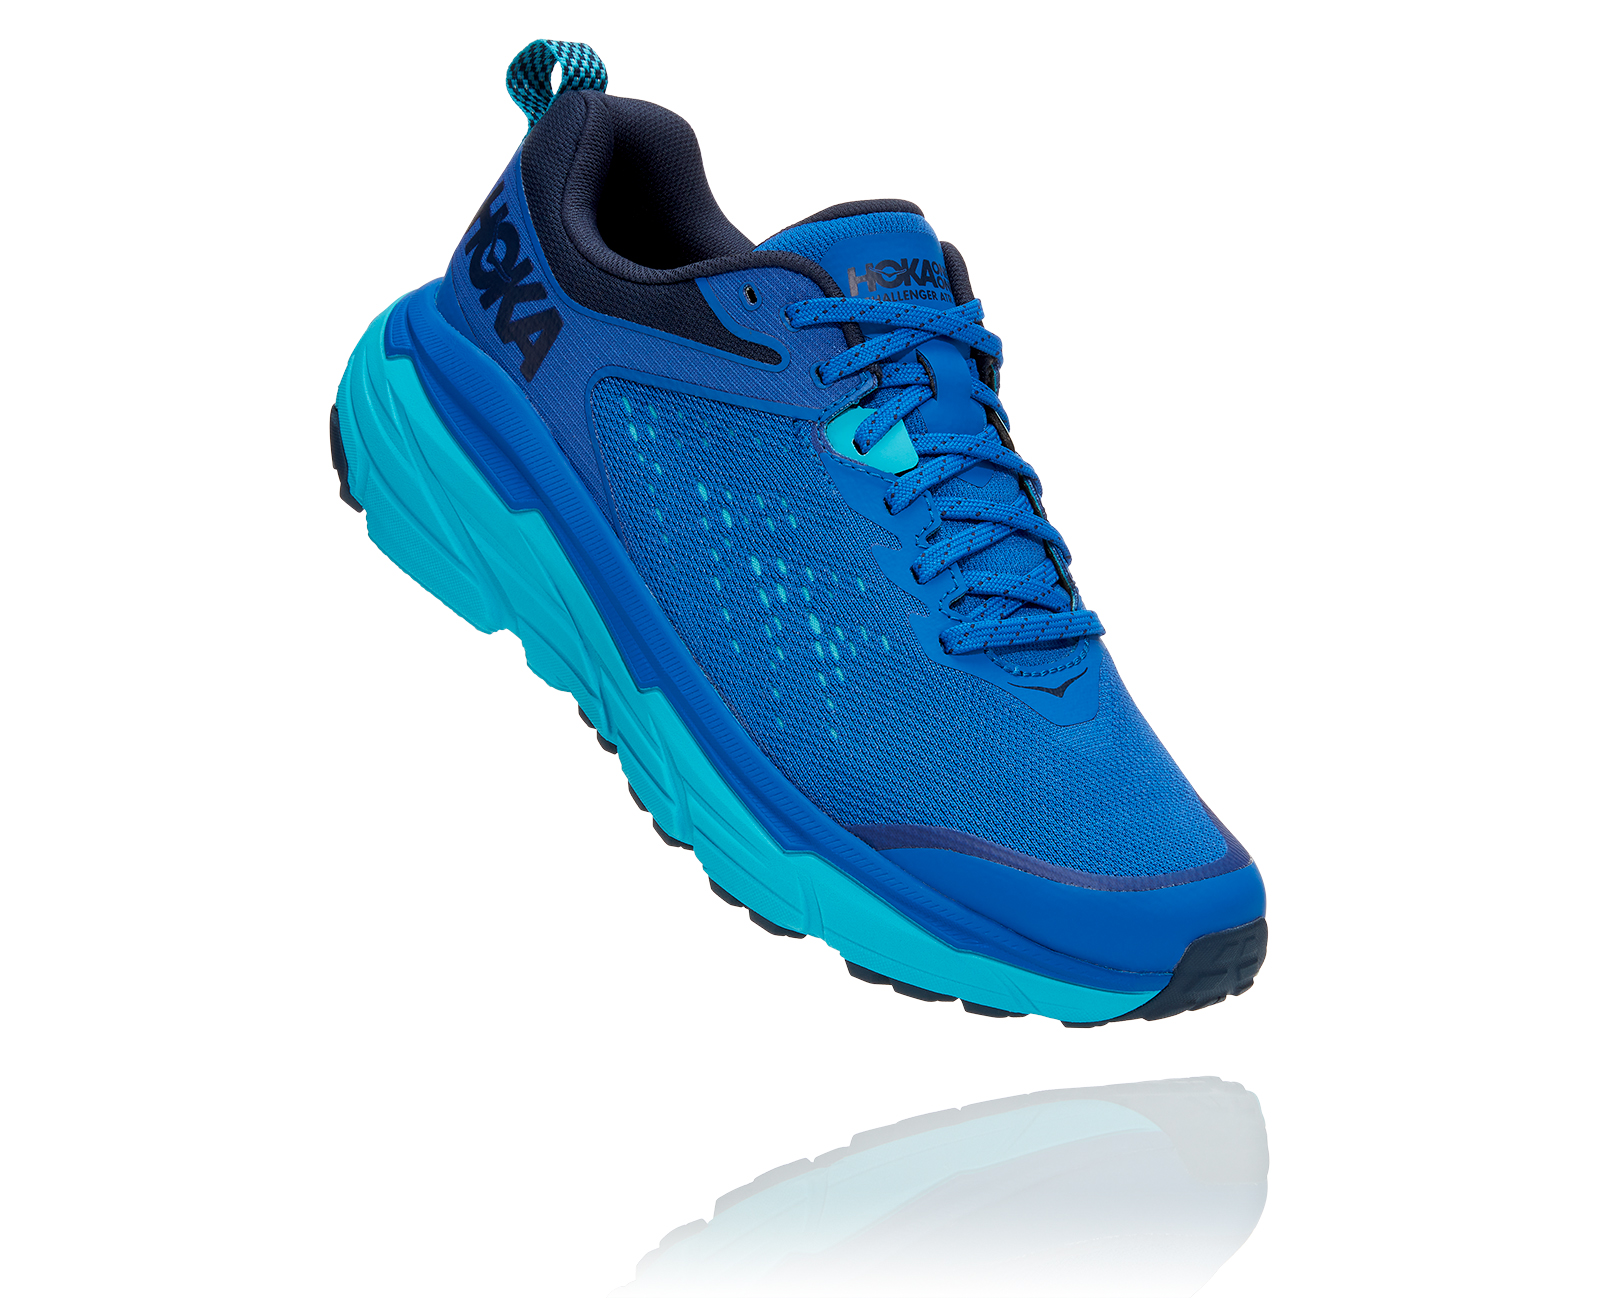 HOKA CHALLENGER ATR 6 Turkish Sea/Scuba Blue